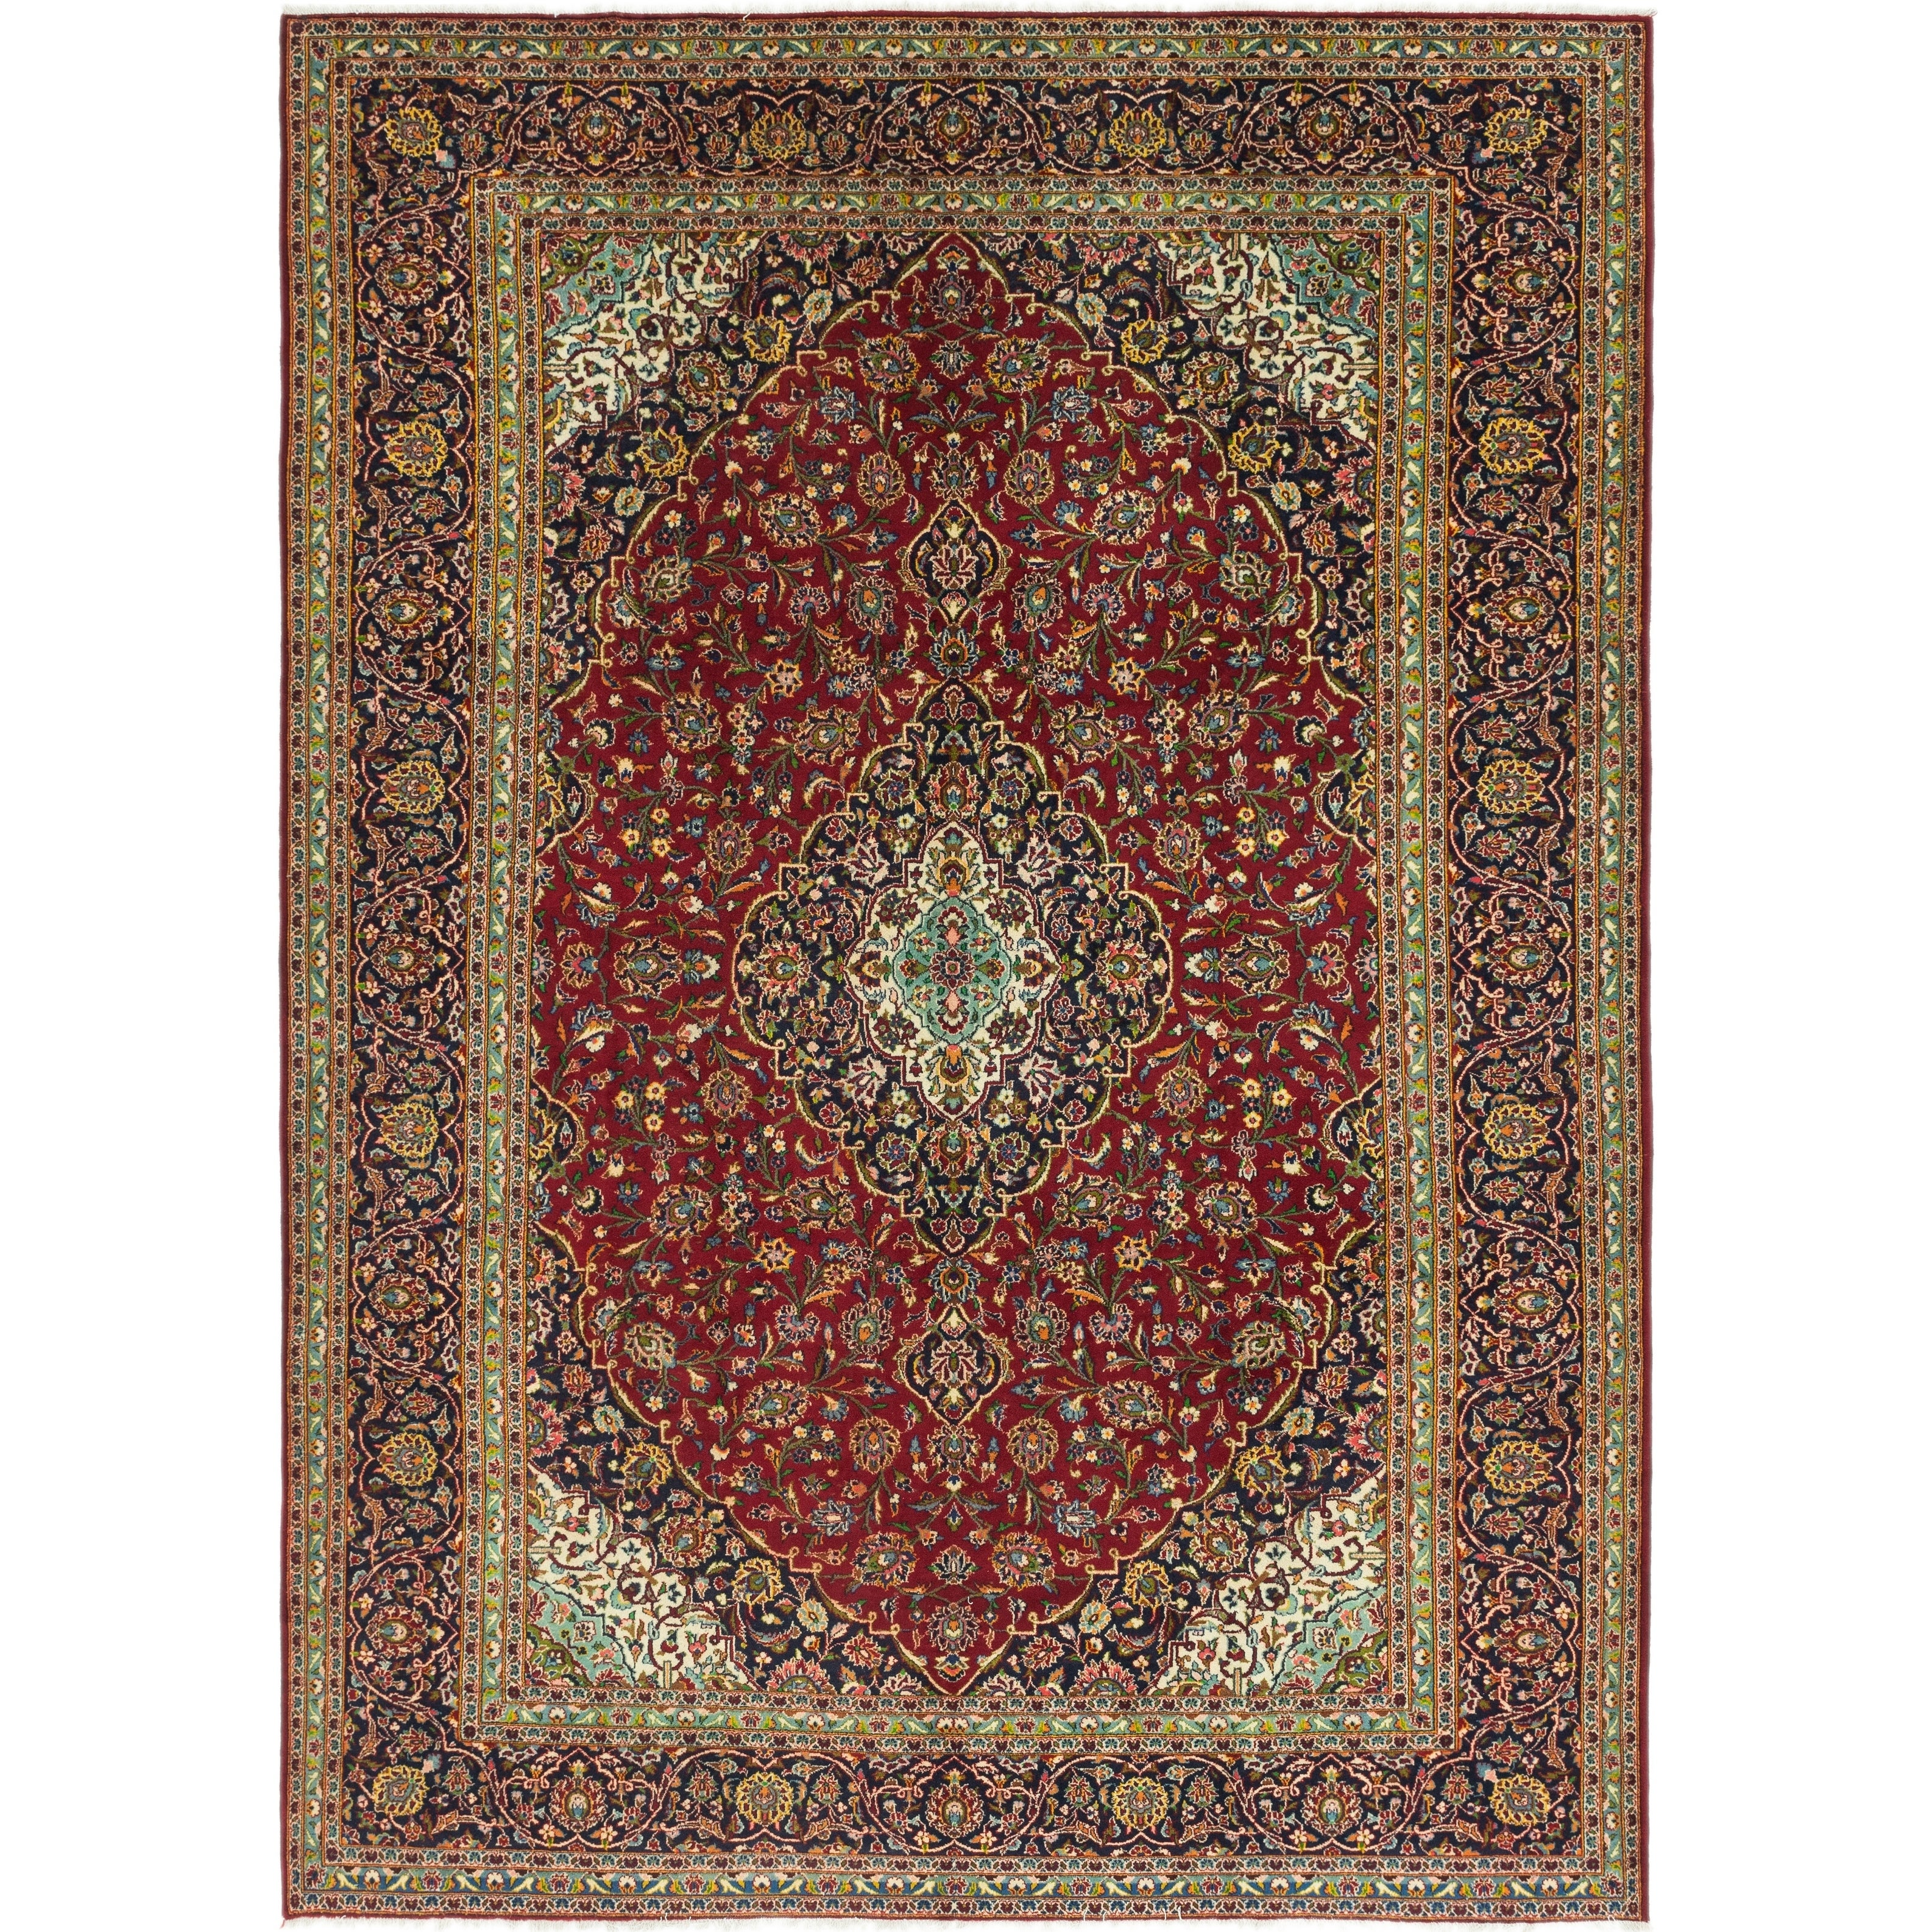 Hand Knotted Kashan Wool Area Rug - 9 9 x 13 4 (Red - 9 9 x 13 4)